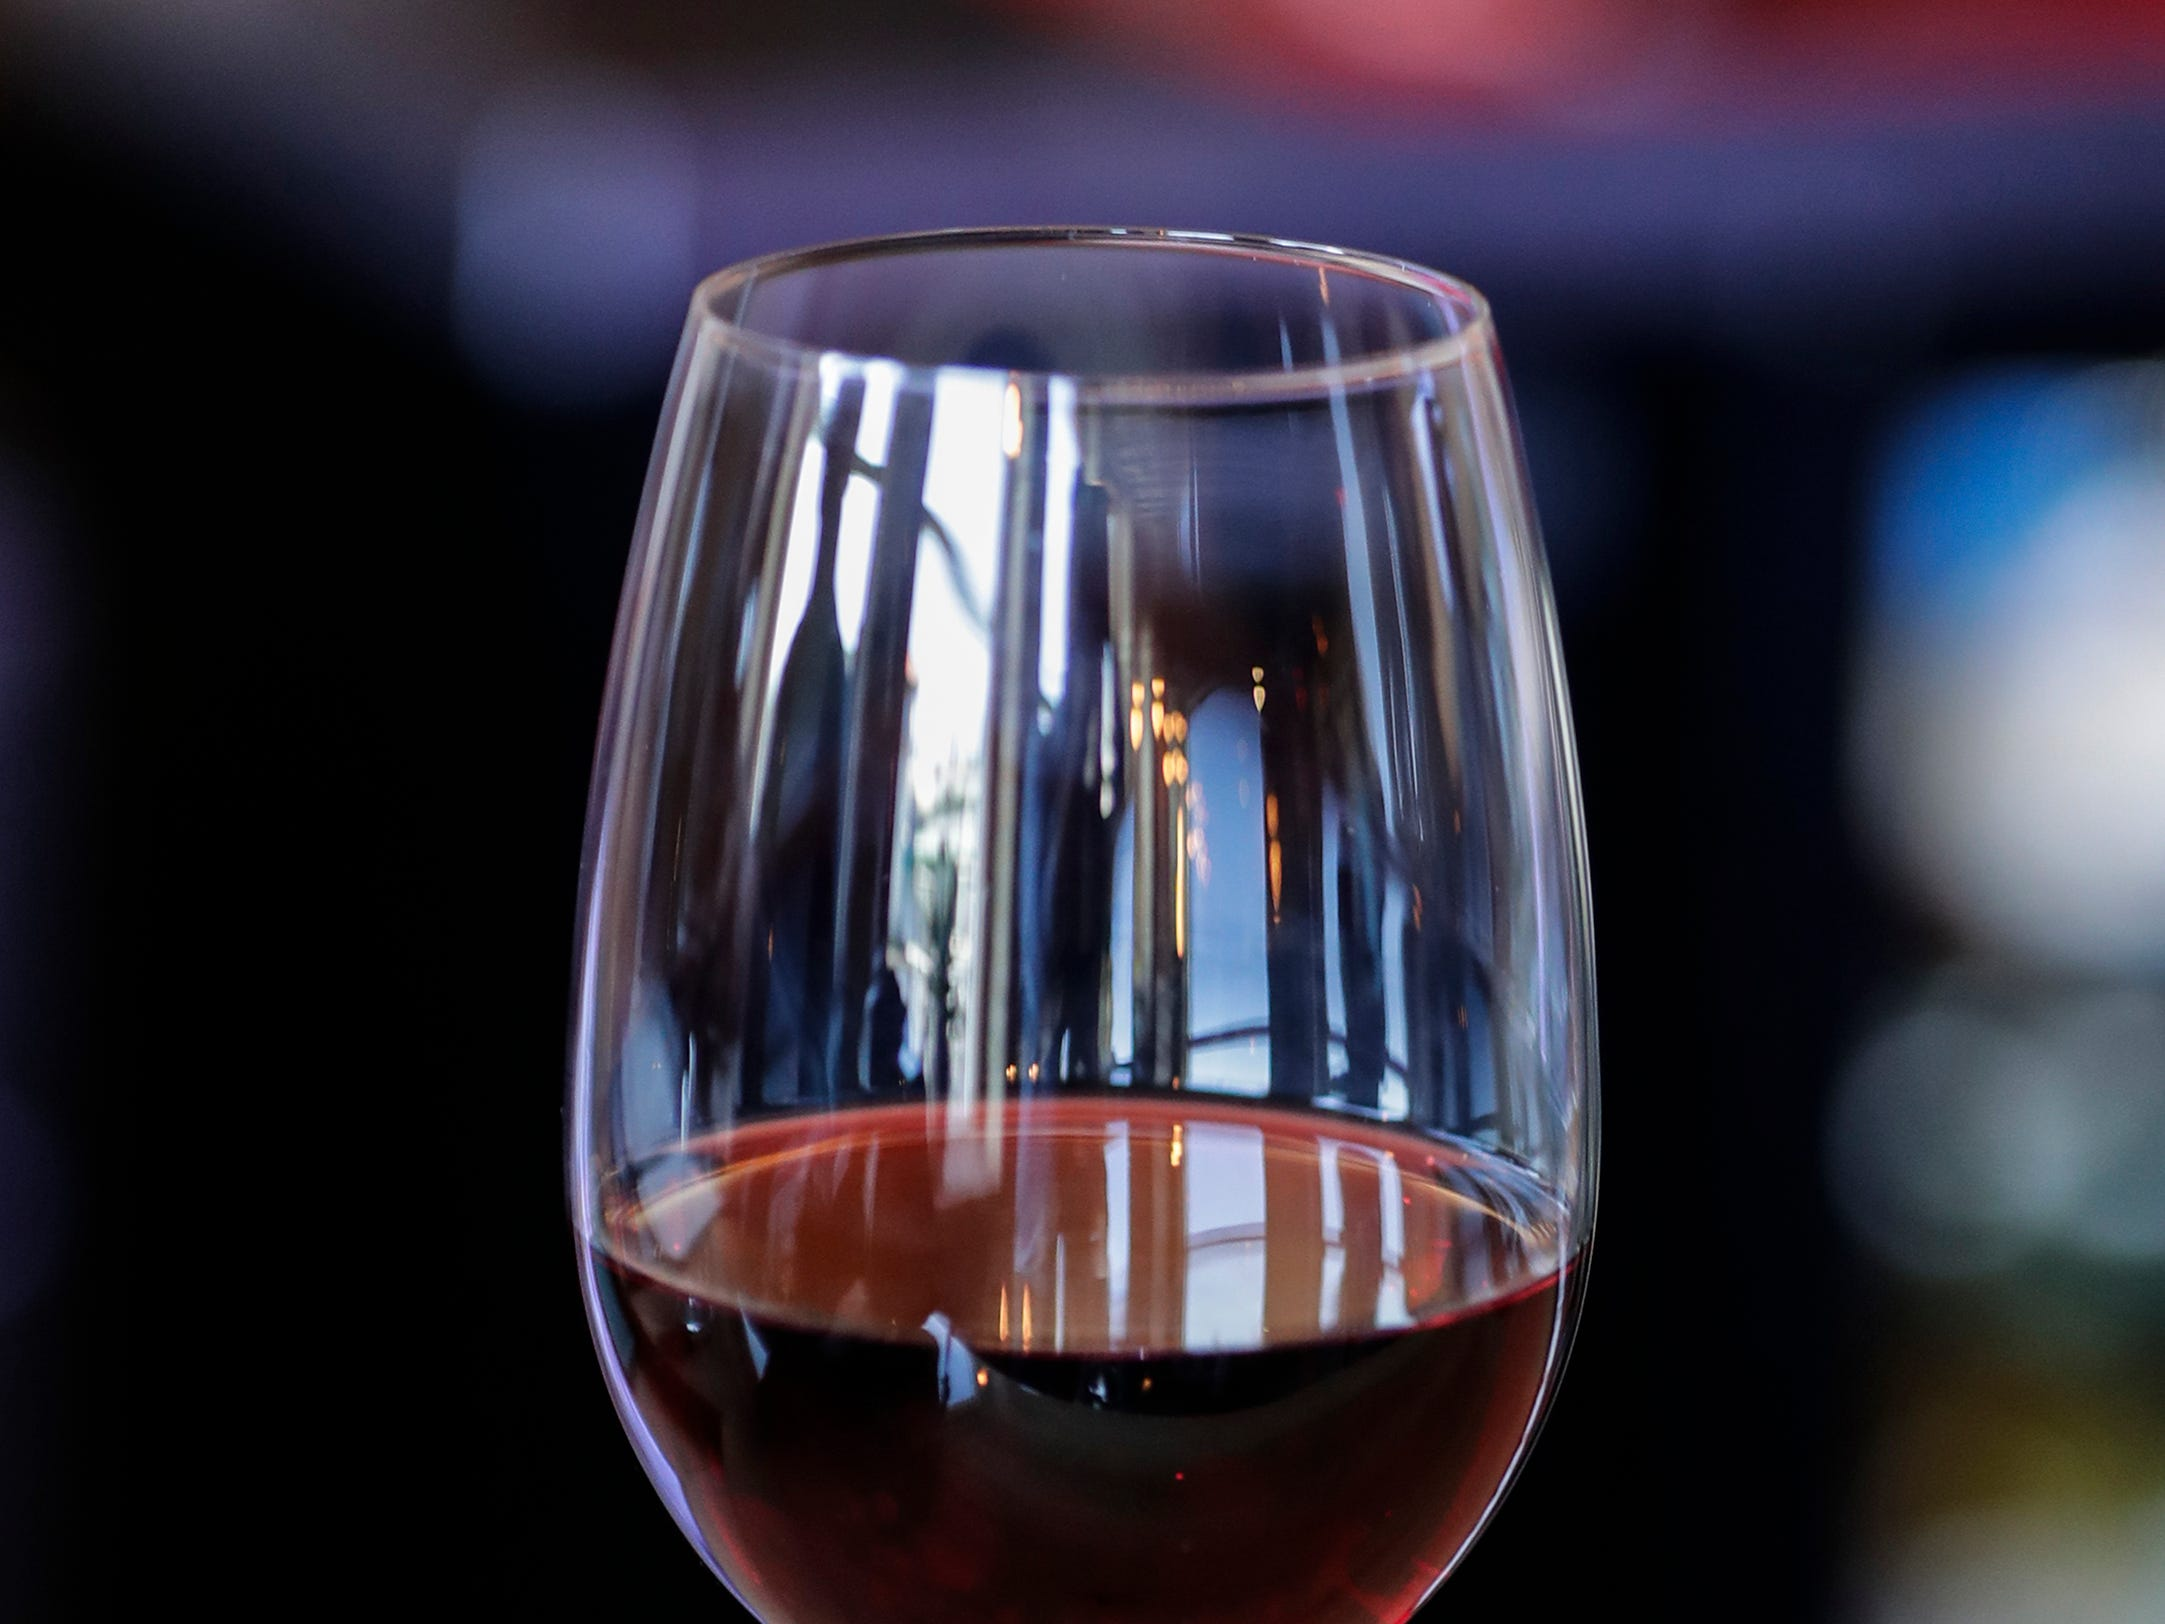 A glass of wine at the Waterfront Wine Bar Saturday, May 4, 2019, in Manitowoc, Wis. Joshua Clark/USA TODAY NETWORK-Wisconsin